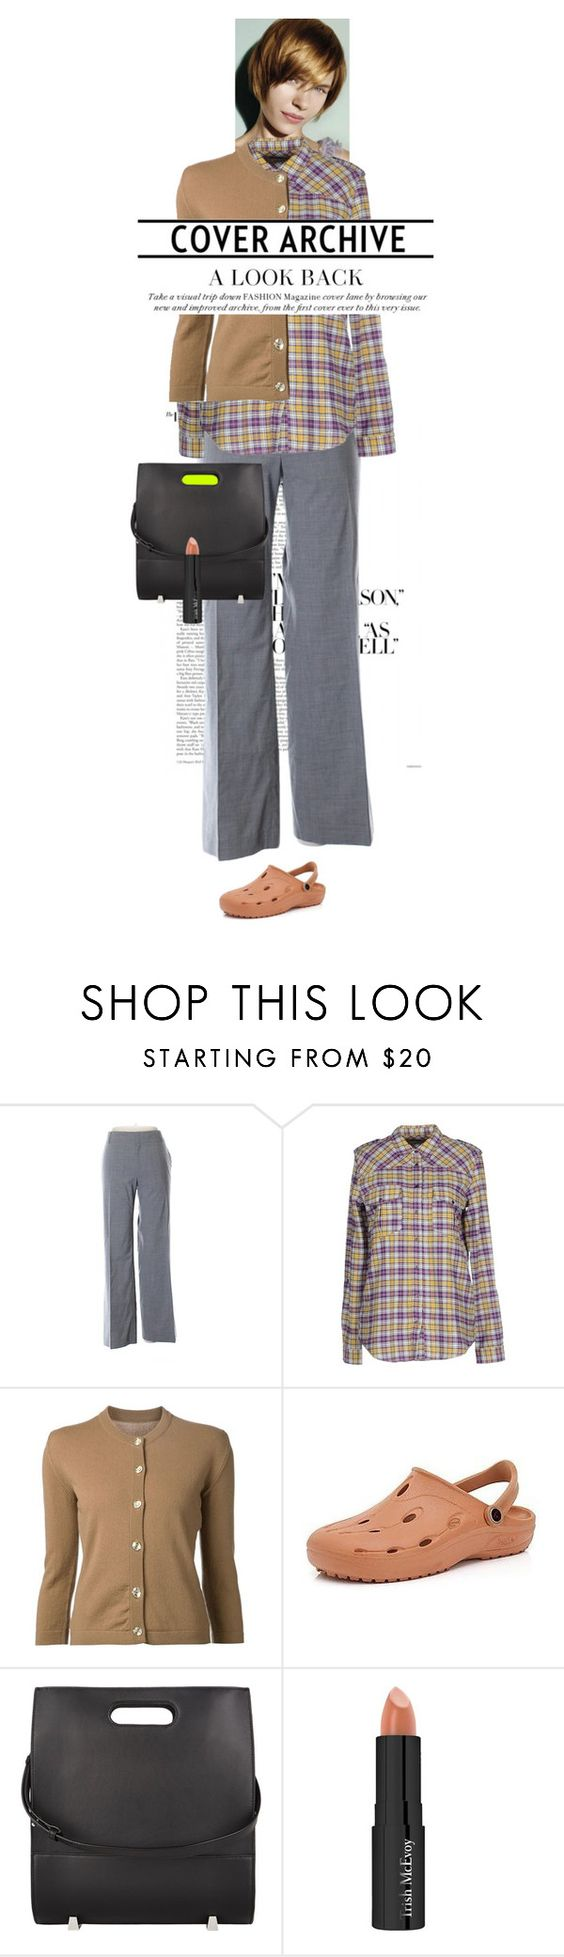 """my real outfit today"" by akchen ❤ liked on Polyvore featuring Banana Republic, M.GRIFONI DENIM, Lucien Pellat-Finet, Alexander Wang and Trish McEvoy"